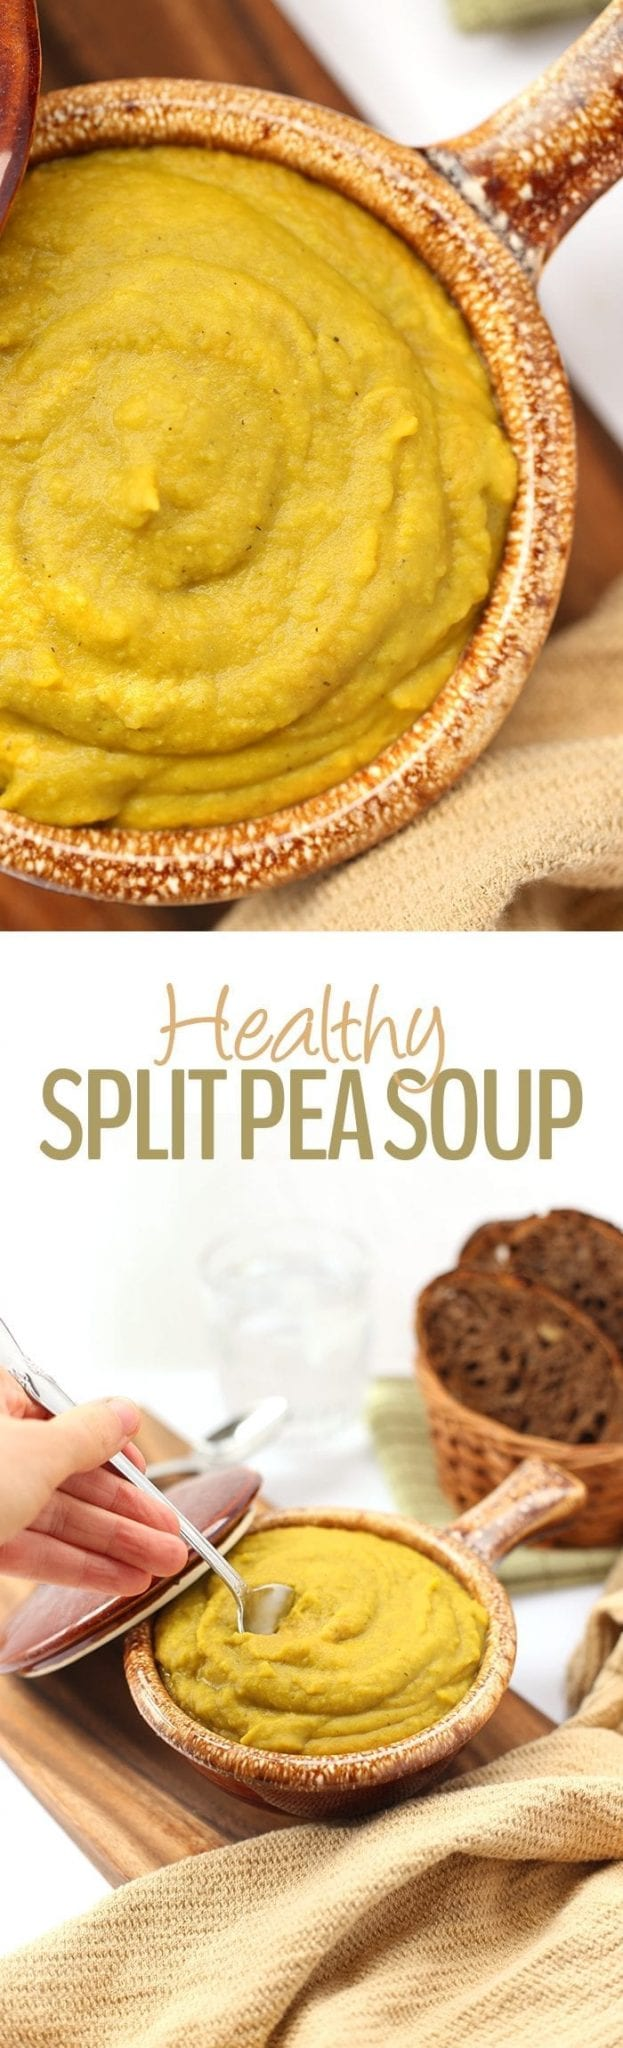 This creamy and hearty Healthy Split Pea Soup is packed full of vegetables and plant-based protein for a delicious meal in one! A healthy soup recipe ready in 40 minutes or less.